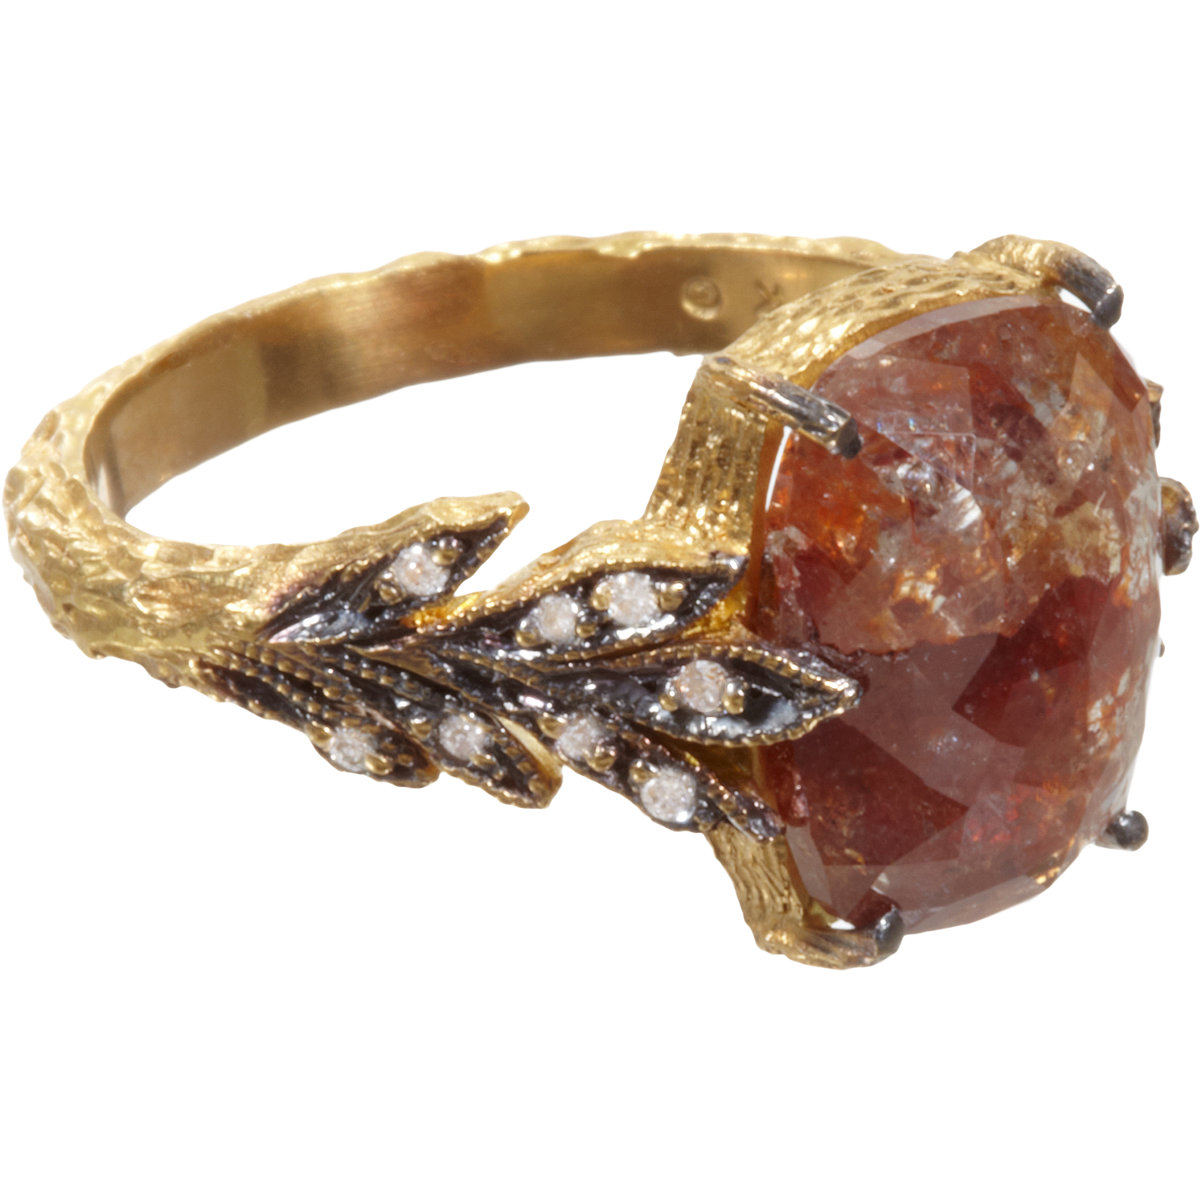 Rustic Diamond: Cathy Waterman Rustic Diamond Leafside Ring